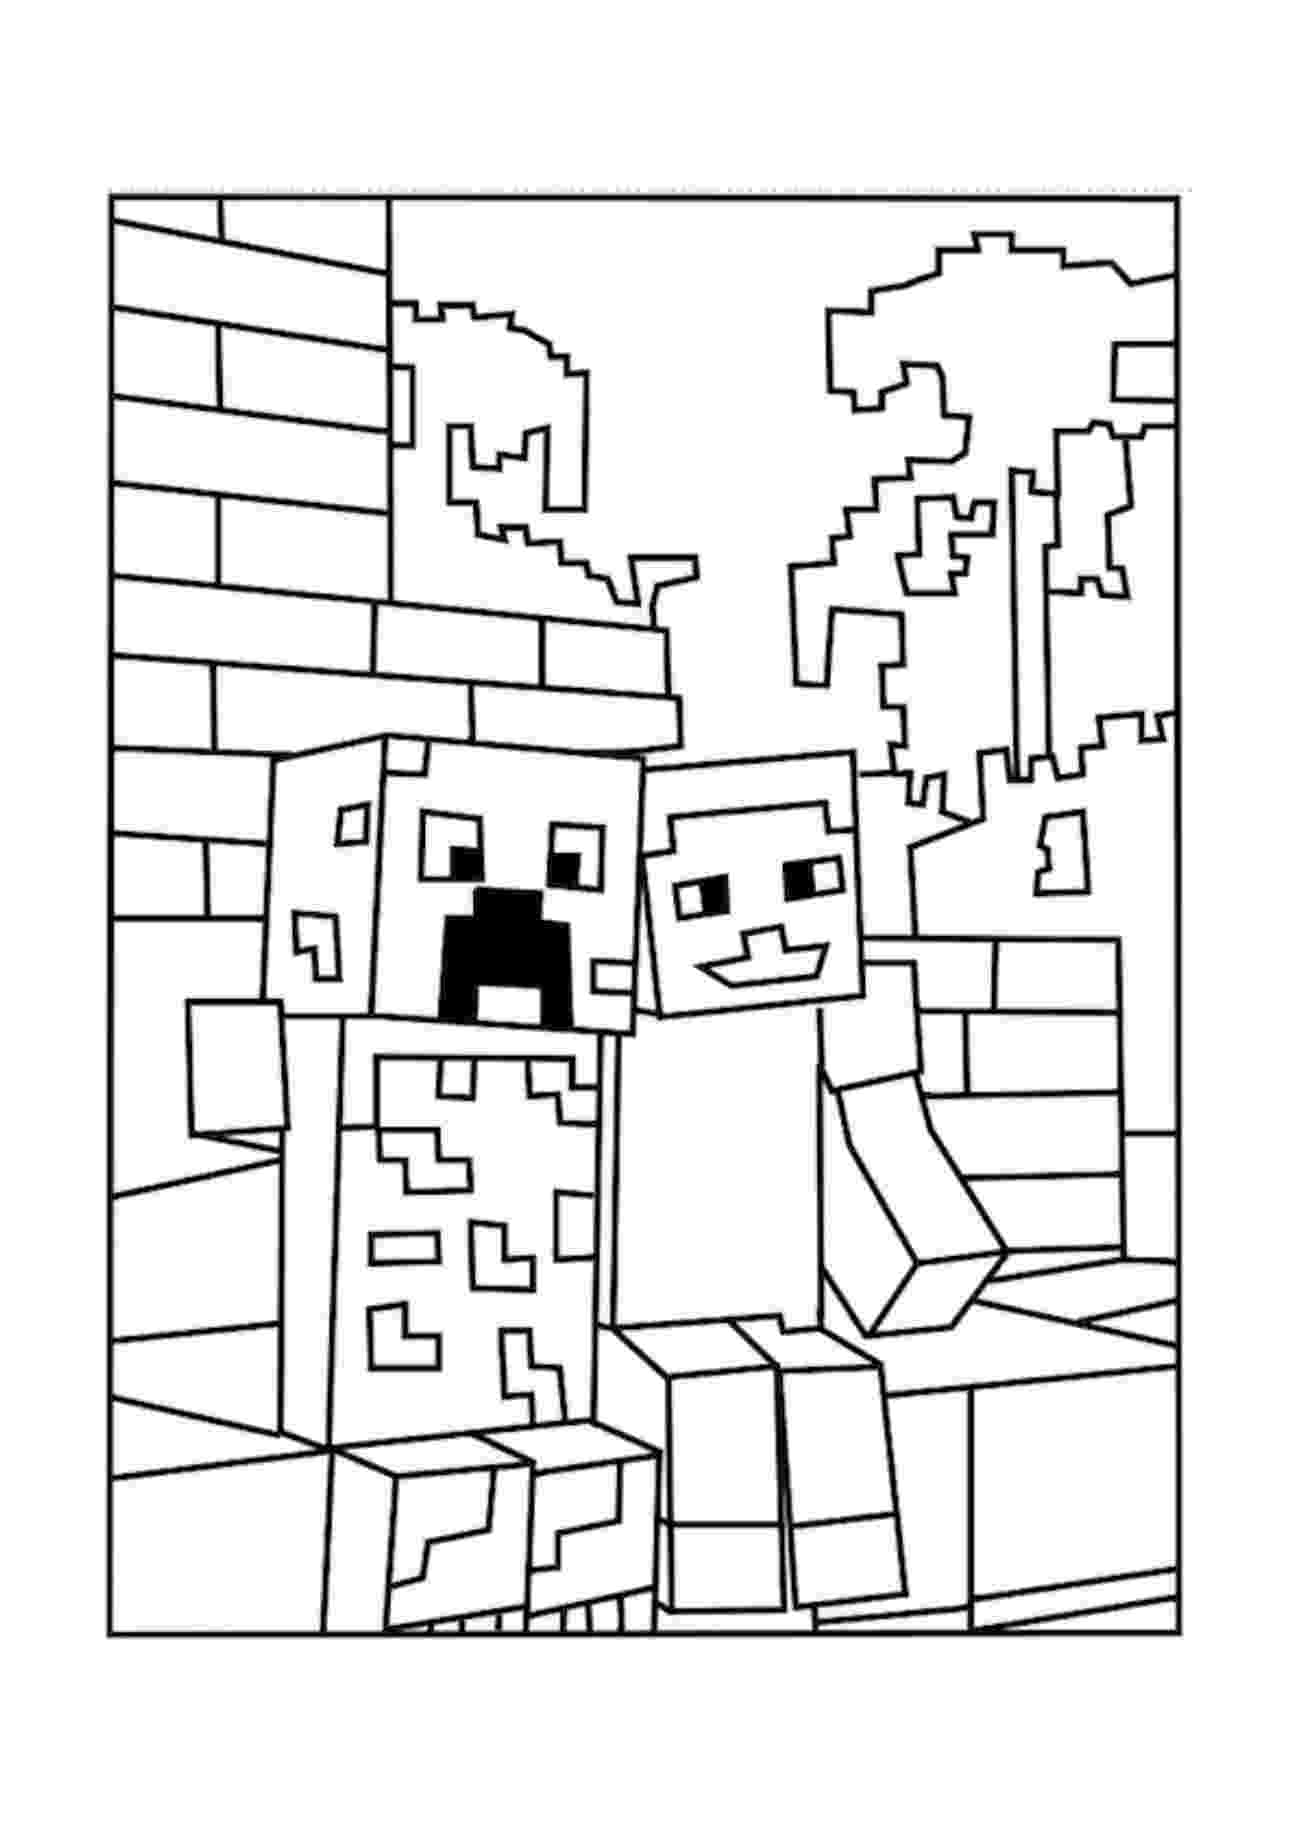 minecraft pictures to print and color free minecraft coloring sheet to print out fun coloring and print to minecraft color pictures